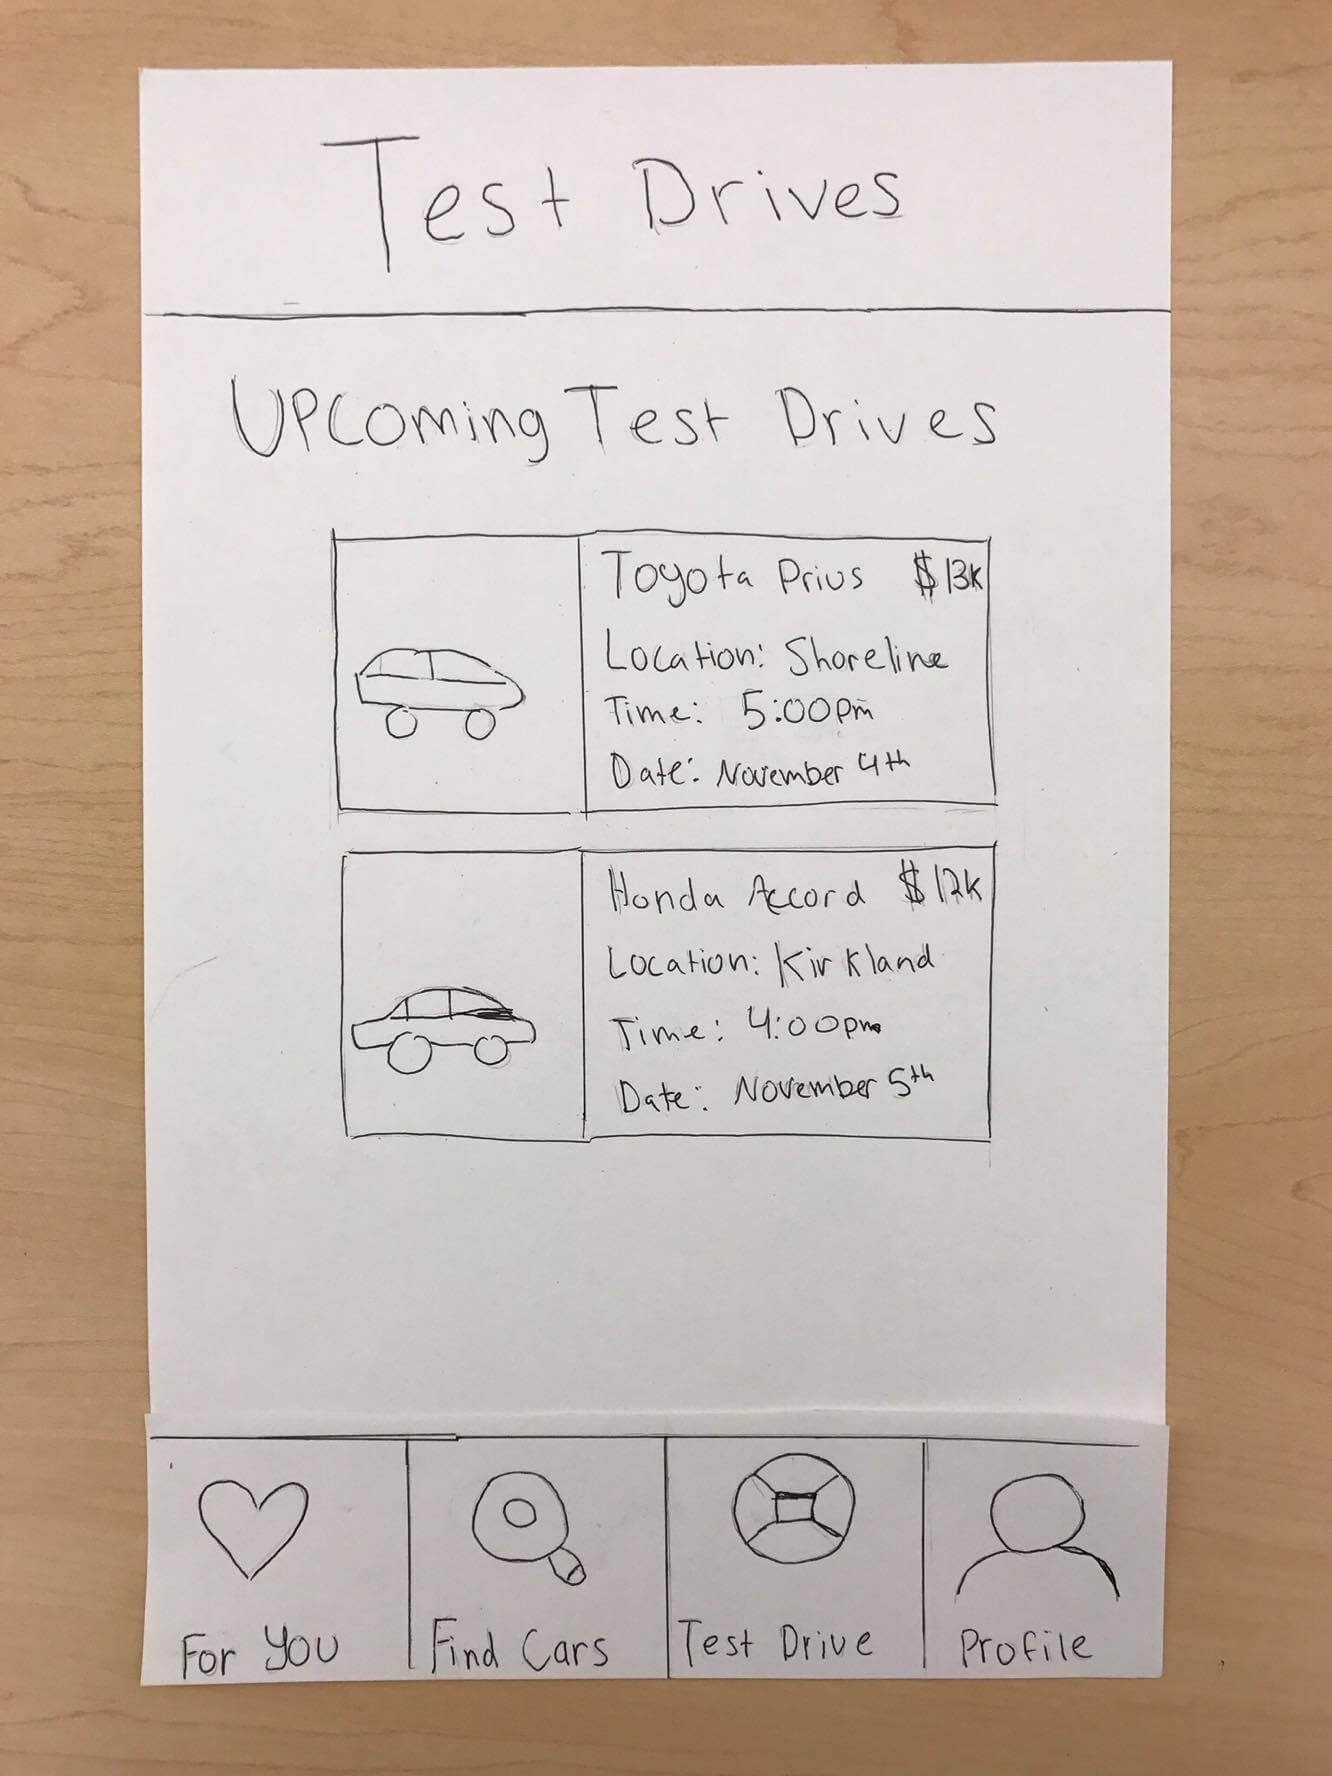 A sketch showing the scheduled test drives page